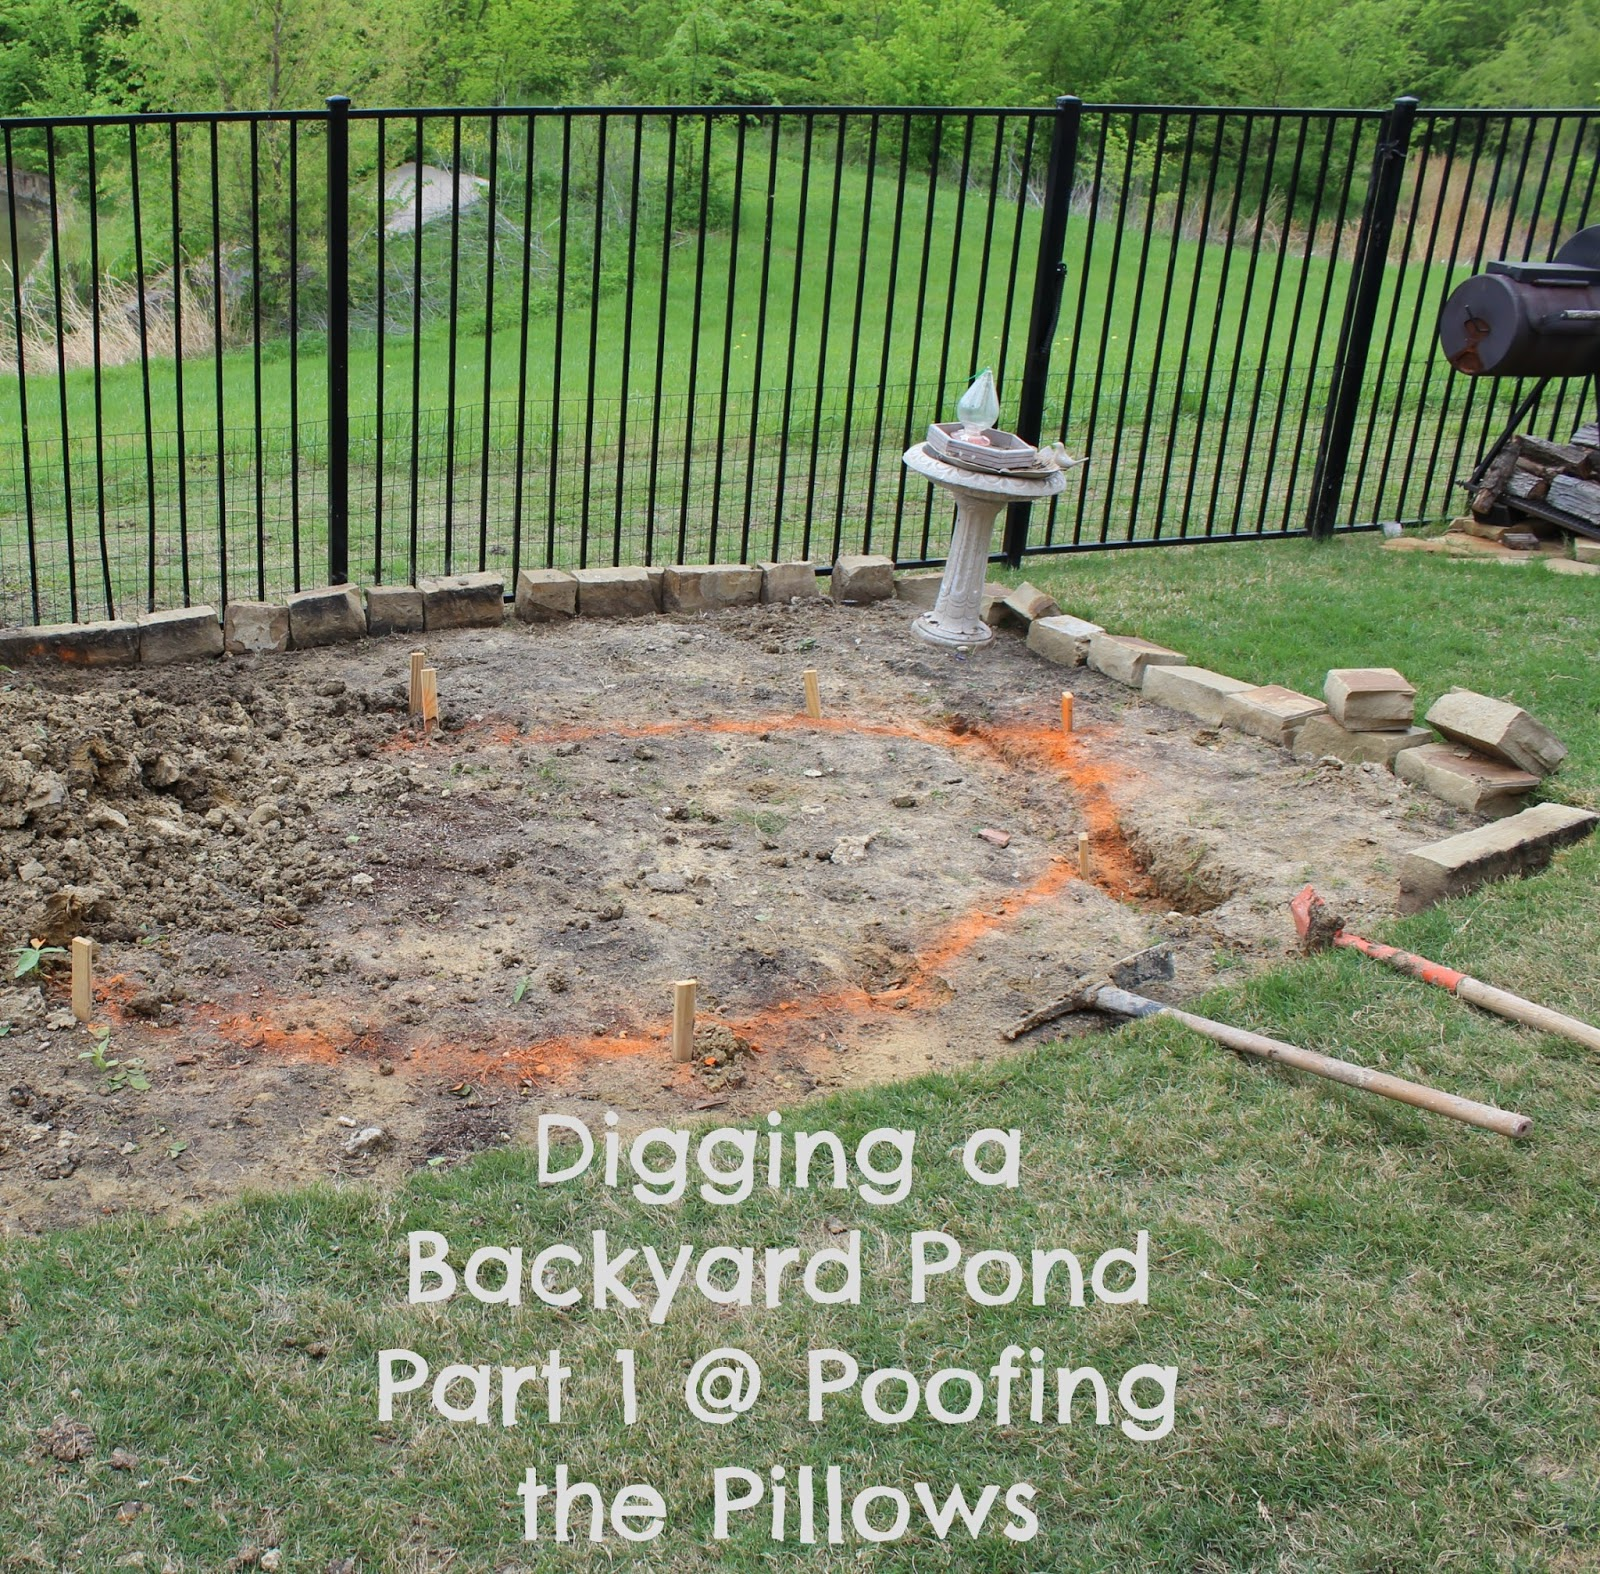 Building a backyard pond part 2 poofing the pillows for Diy backyard pond